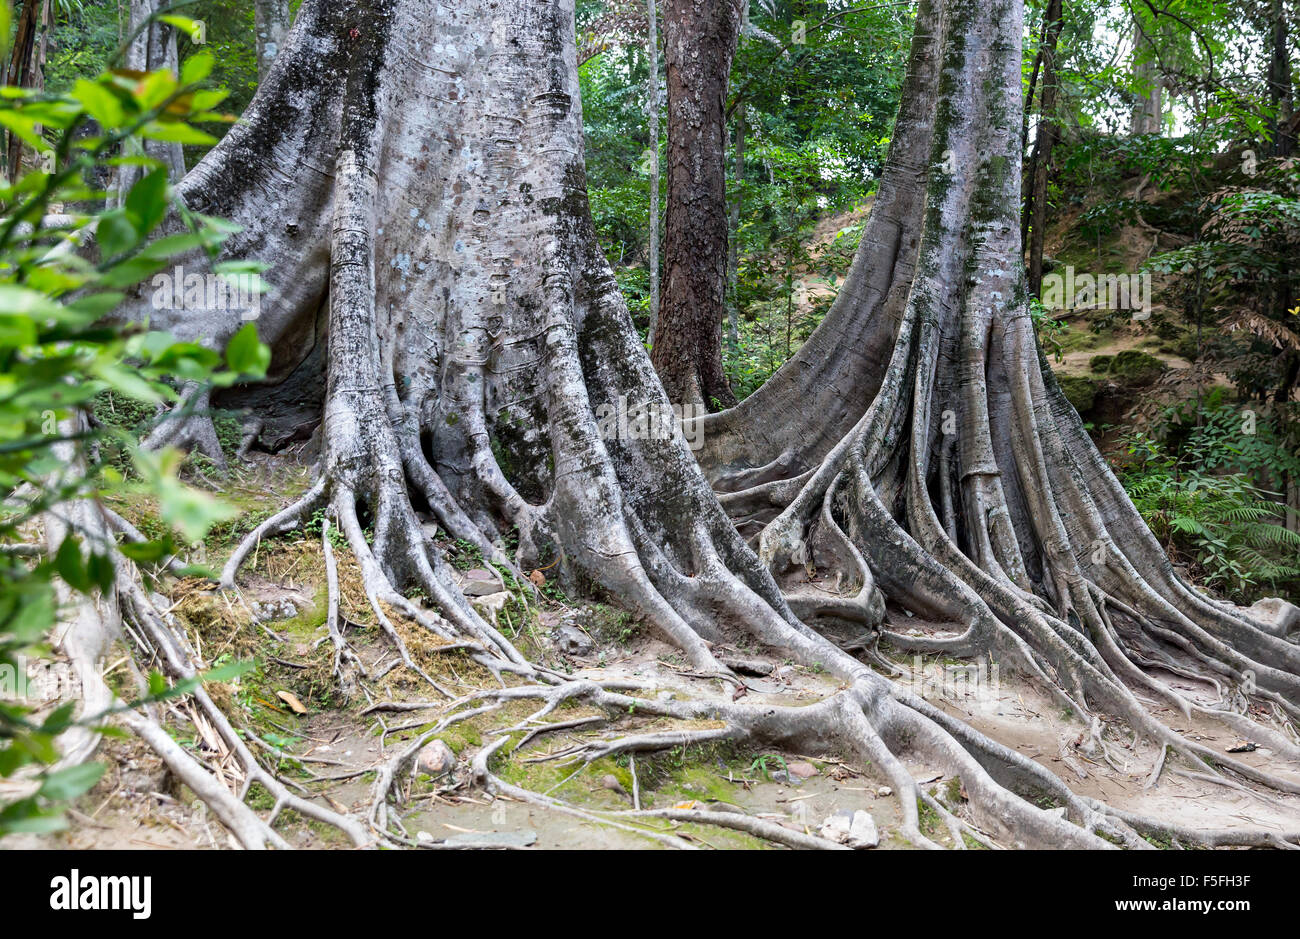 Tropical tree roots. - Stock Image